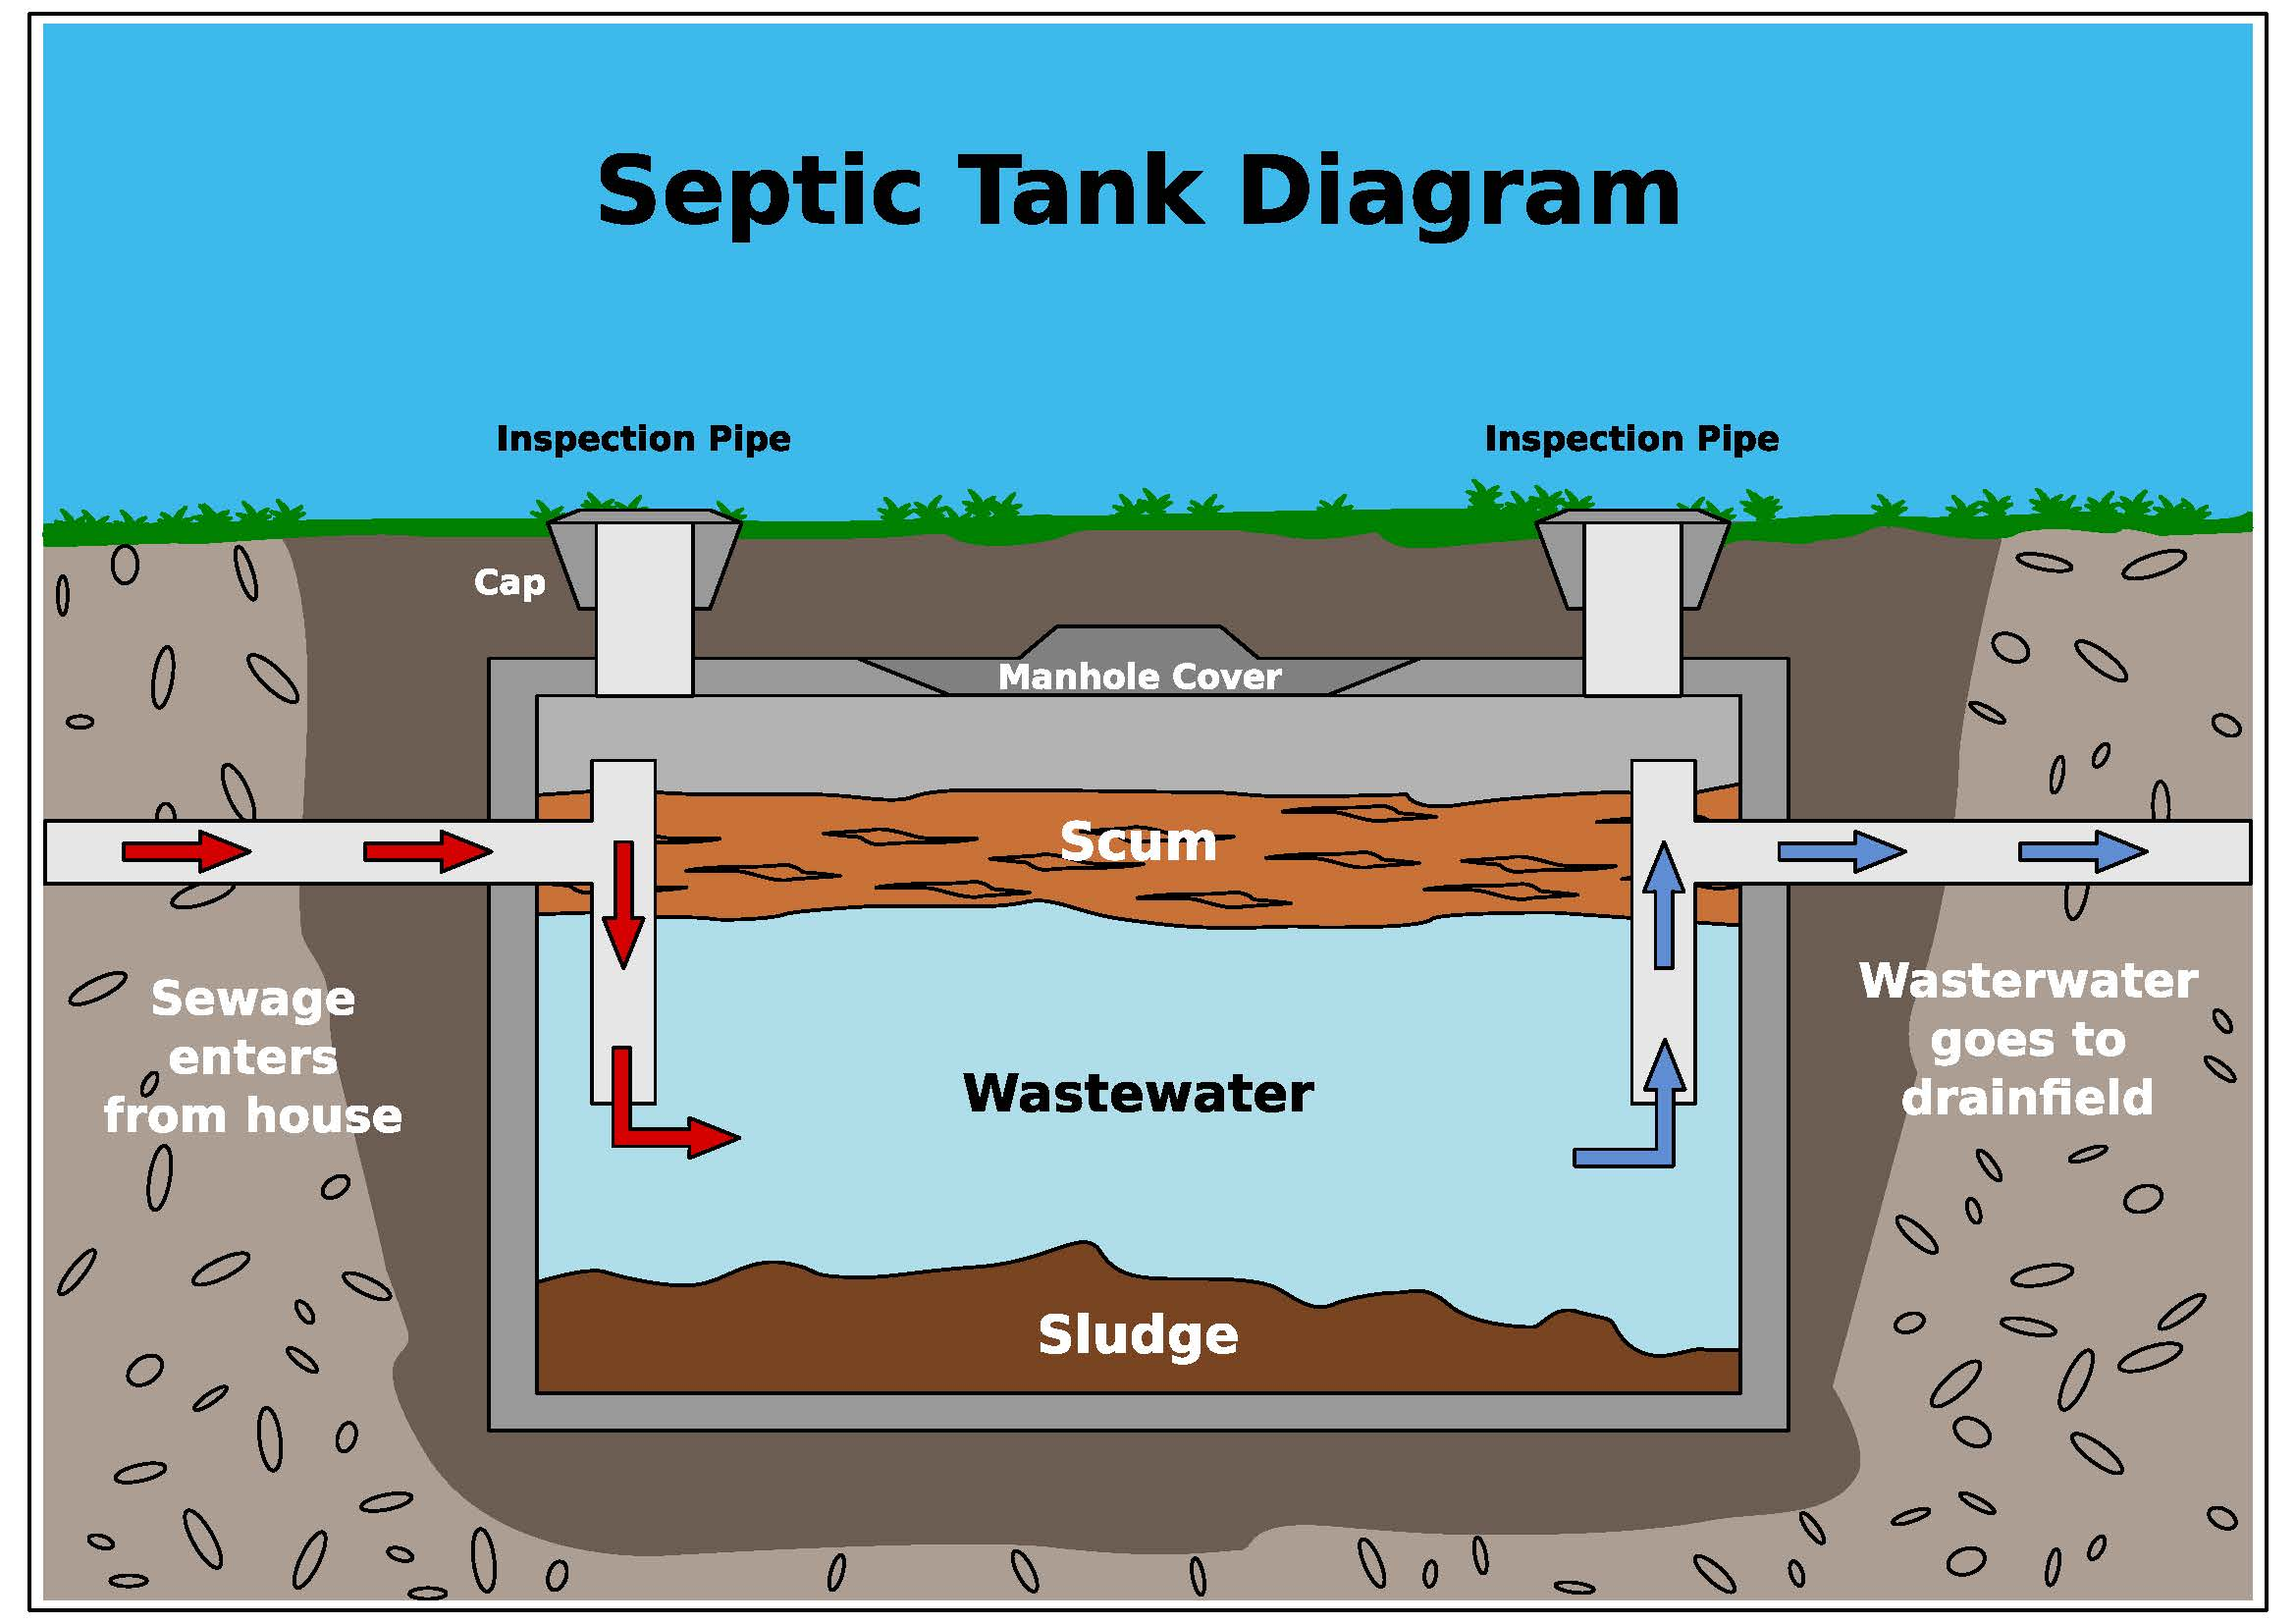 Diagram of a septic tank